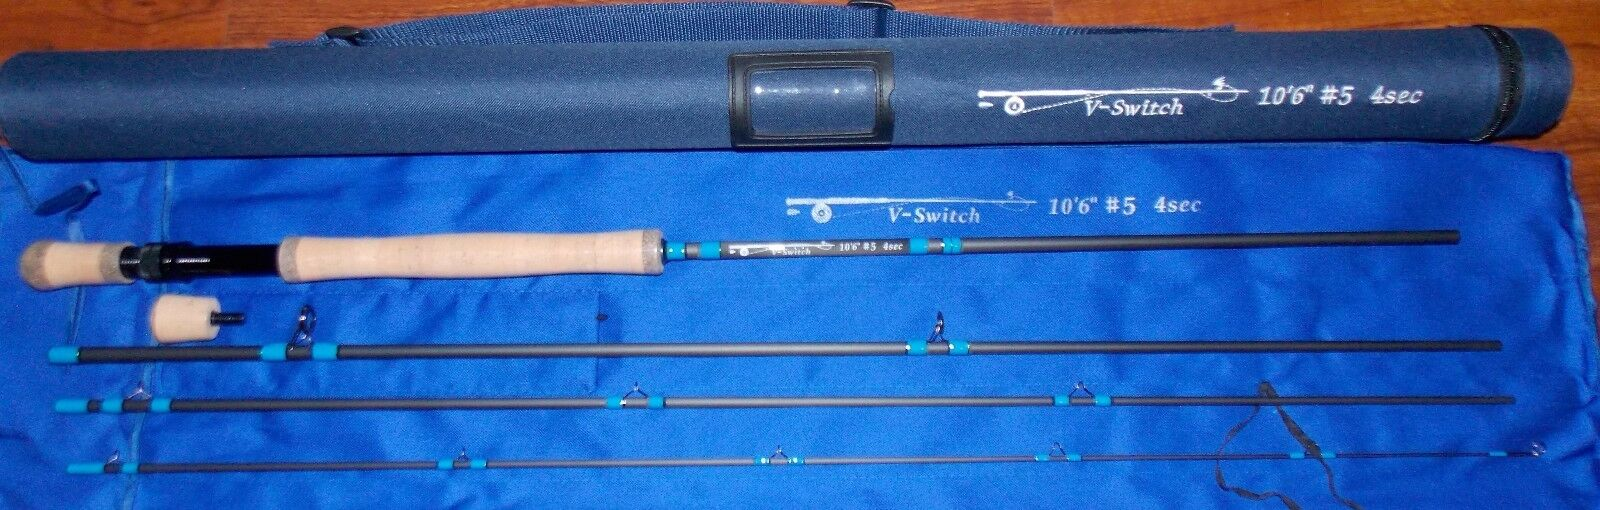 5  WT V-Switch  Fly Fishing Rod  10 1 2 ft  4 Sec.with Tube  FREE 3 DAY SHIPPING  enjoy saving 30-50% off